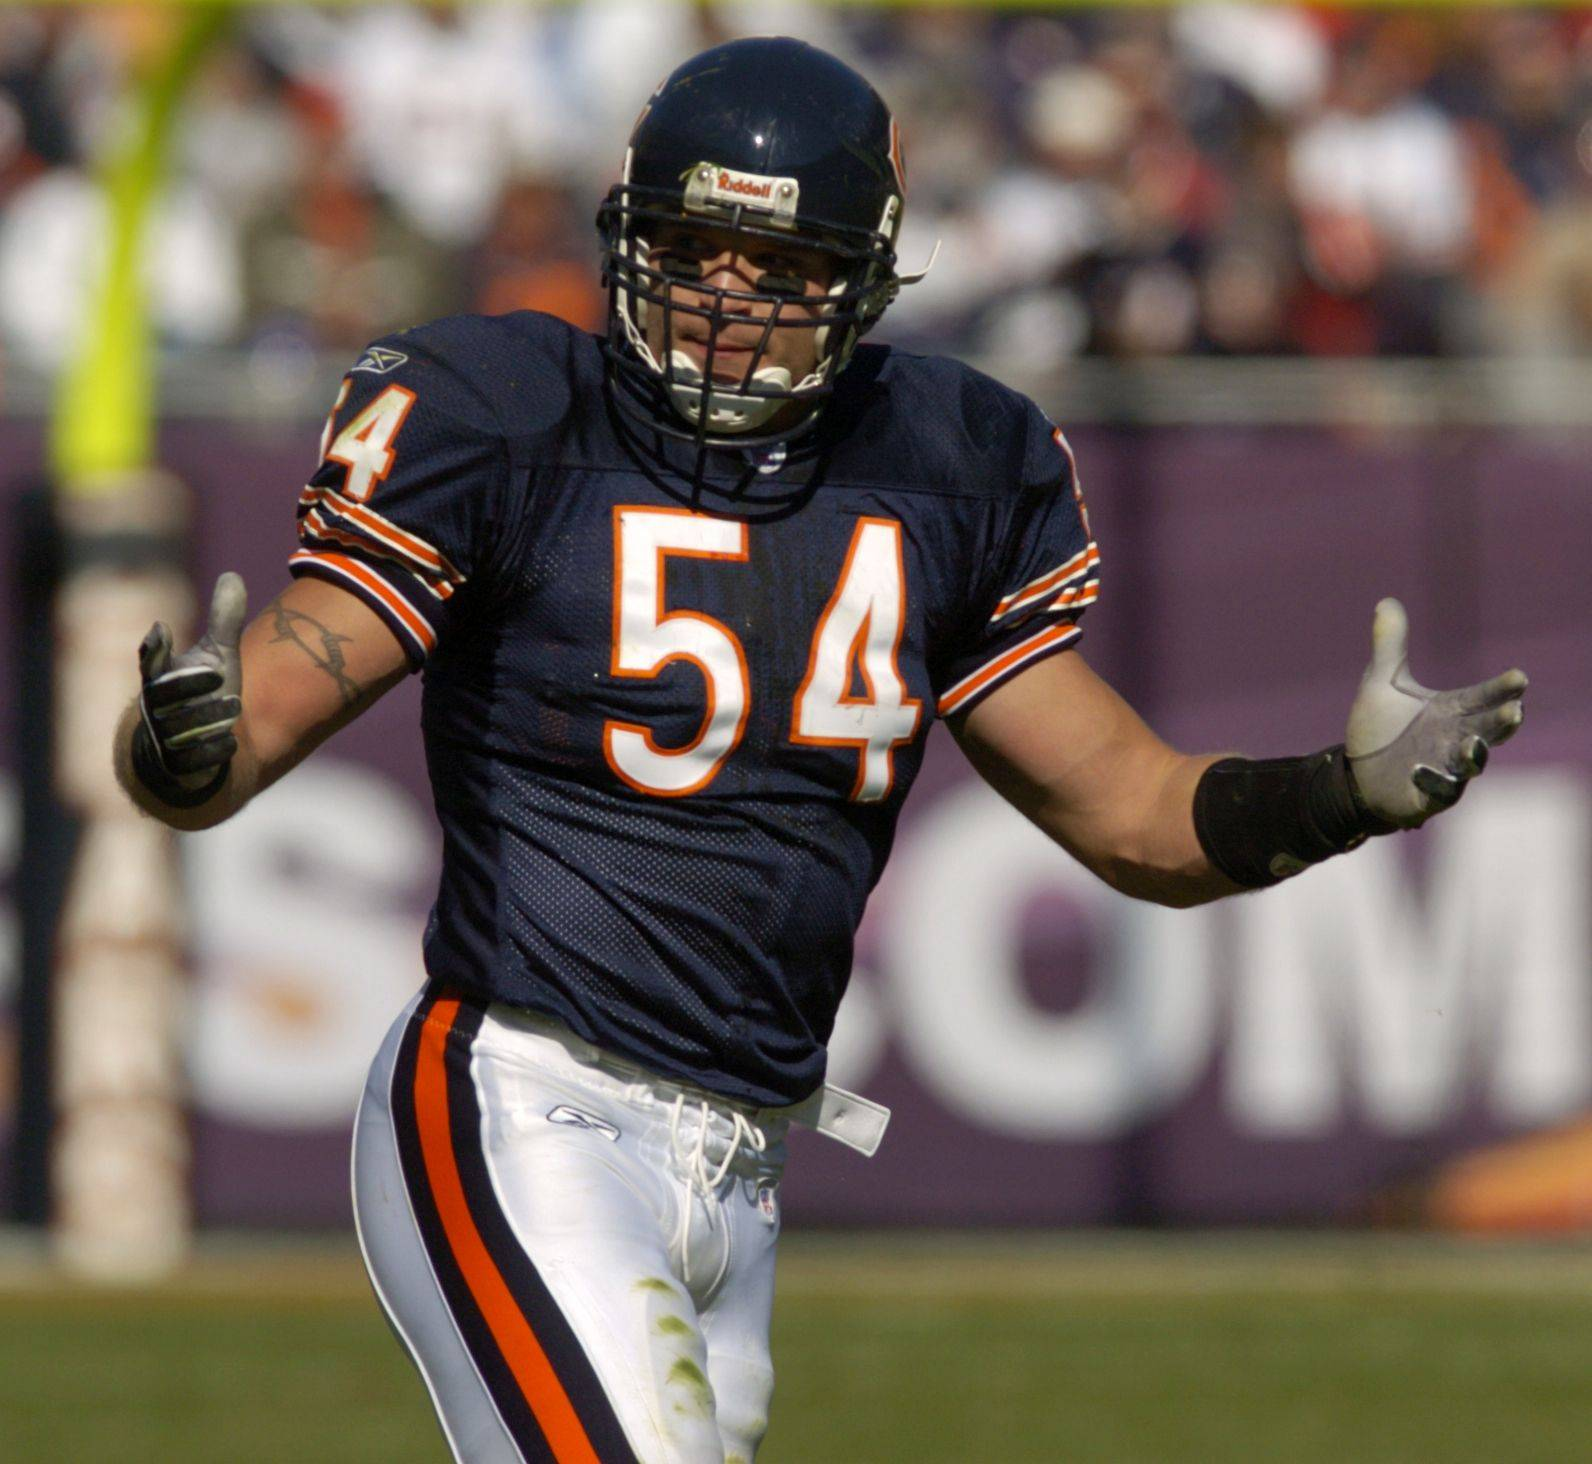 Bears linebacker Brian Urlacher is the new spokesman for Lincoln's Challenge Academy in Rantoul.